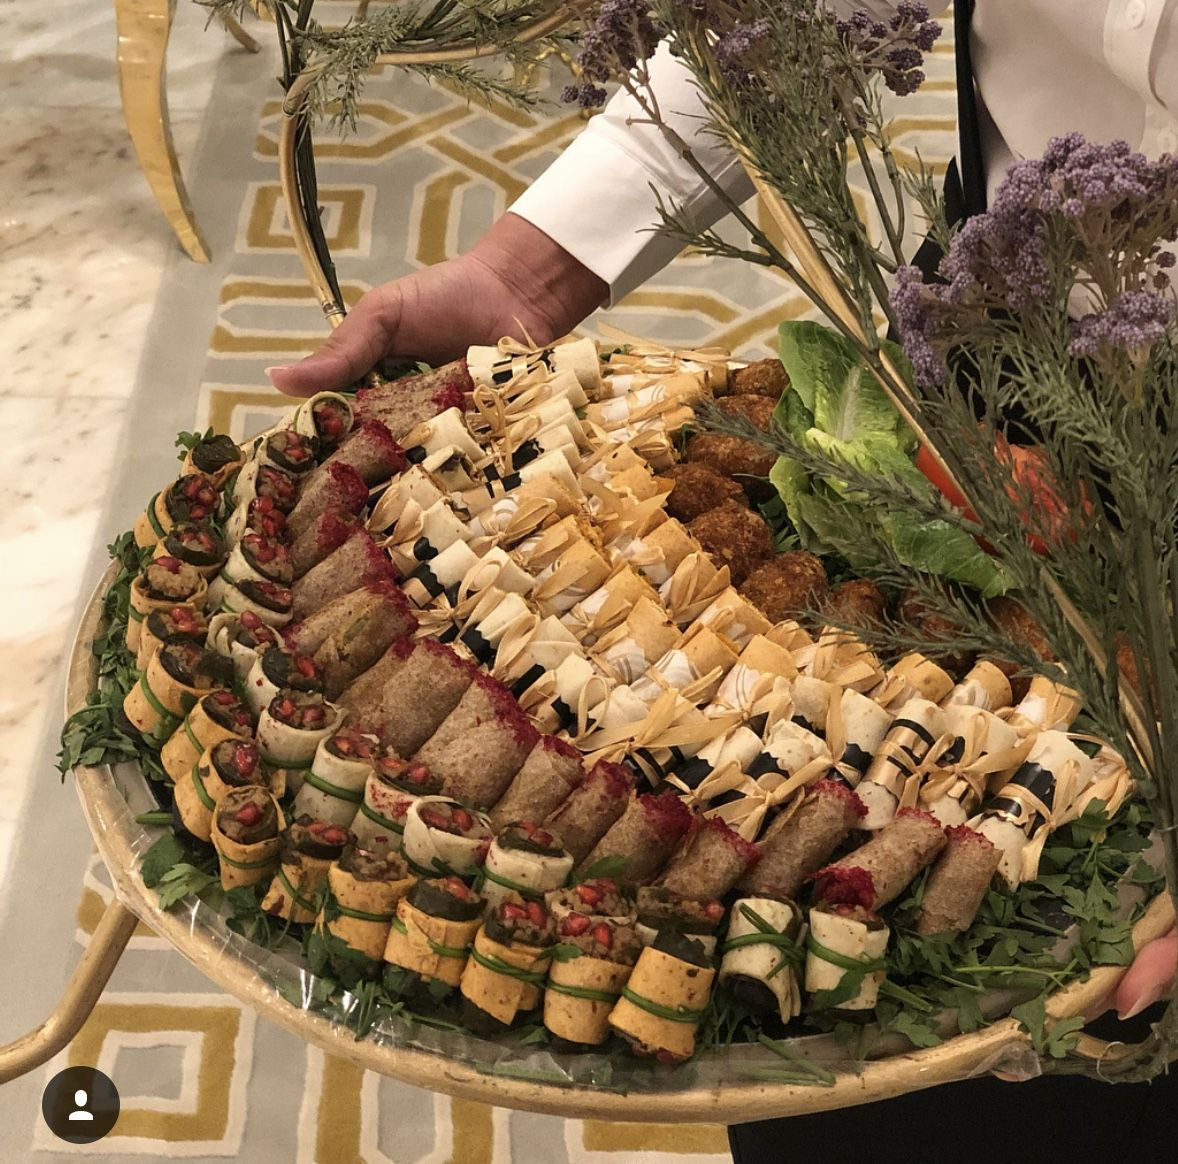 Pin By Shomooo3 Almatar On Sweet Party Food Appetizers Food Presentation Veggie Dishes